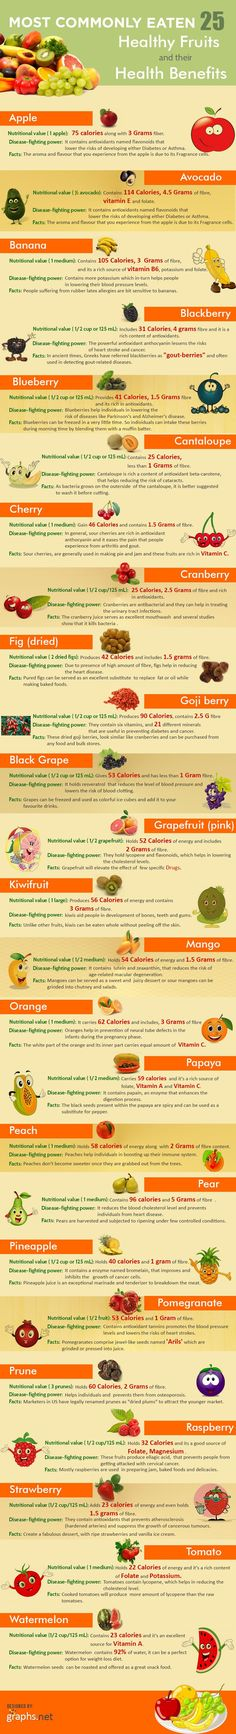 25 Healthy Fruits And Their Health Benefits Infographic - Bananas are very soothing to the gastrointestinal tract because of the high content of the soluble fiber pectin. The pectin helps to normalize bowel function and has shown some promise for the treatment of peptic ulcers. They also contain compounds called protease inhibitors which help eliminate harmful bacteria like Pylori  - If you like this pin, repin it and follow our boards :-)  #FastSimpleFitness…